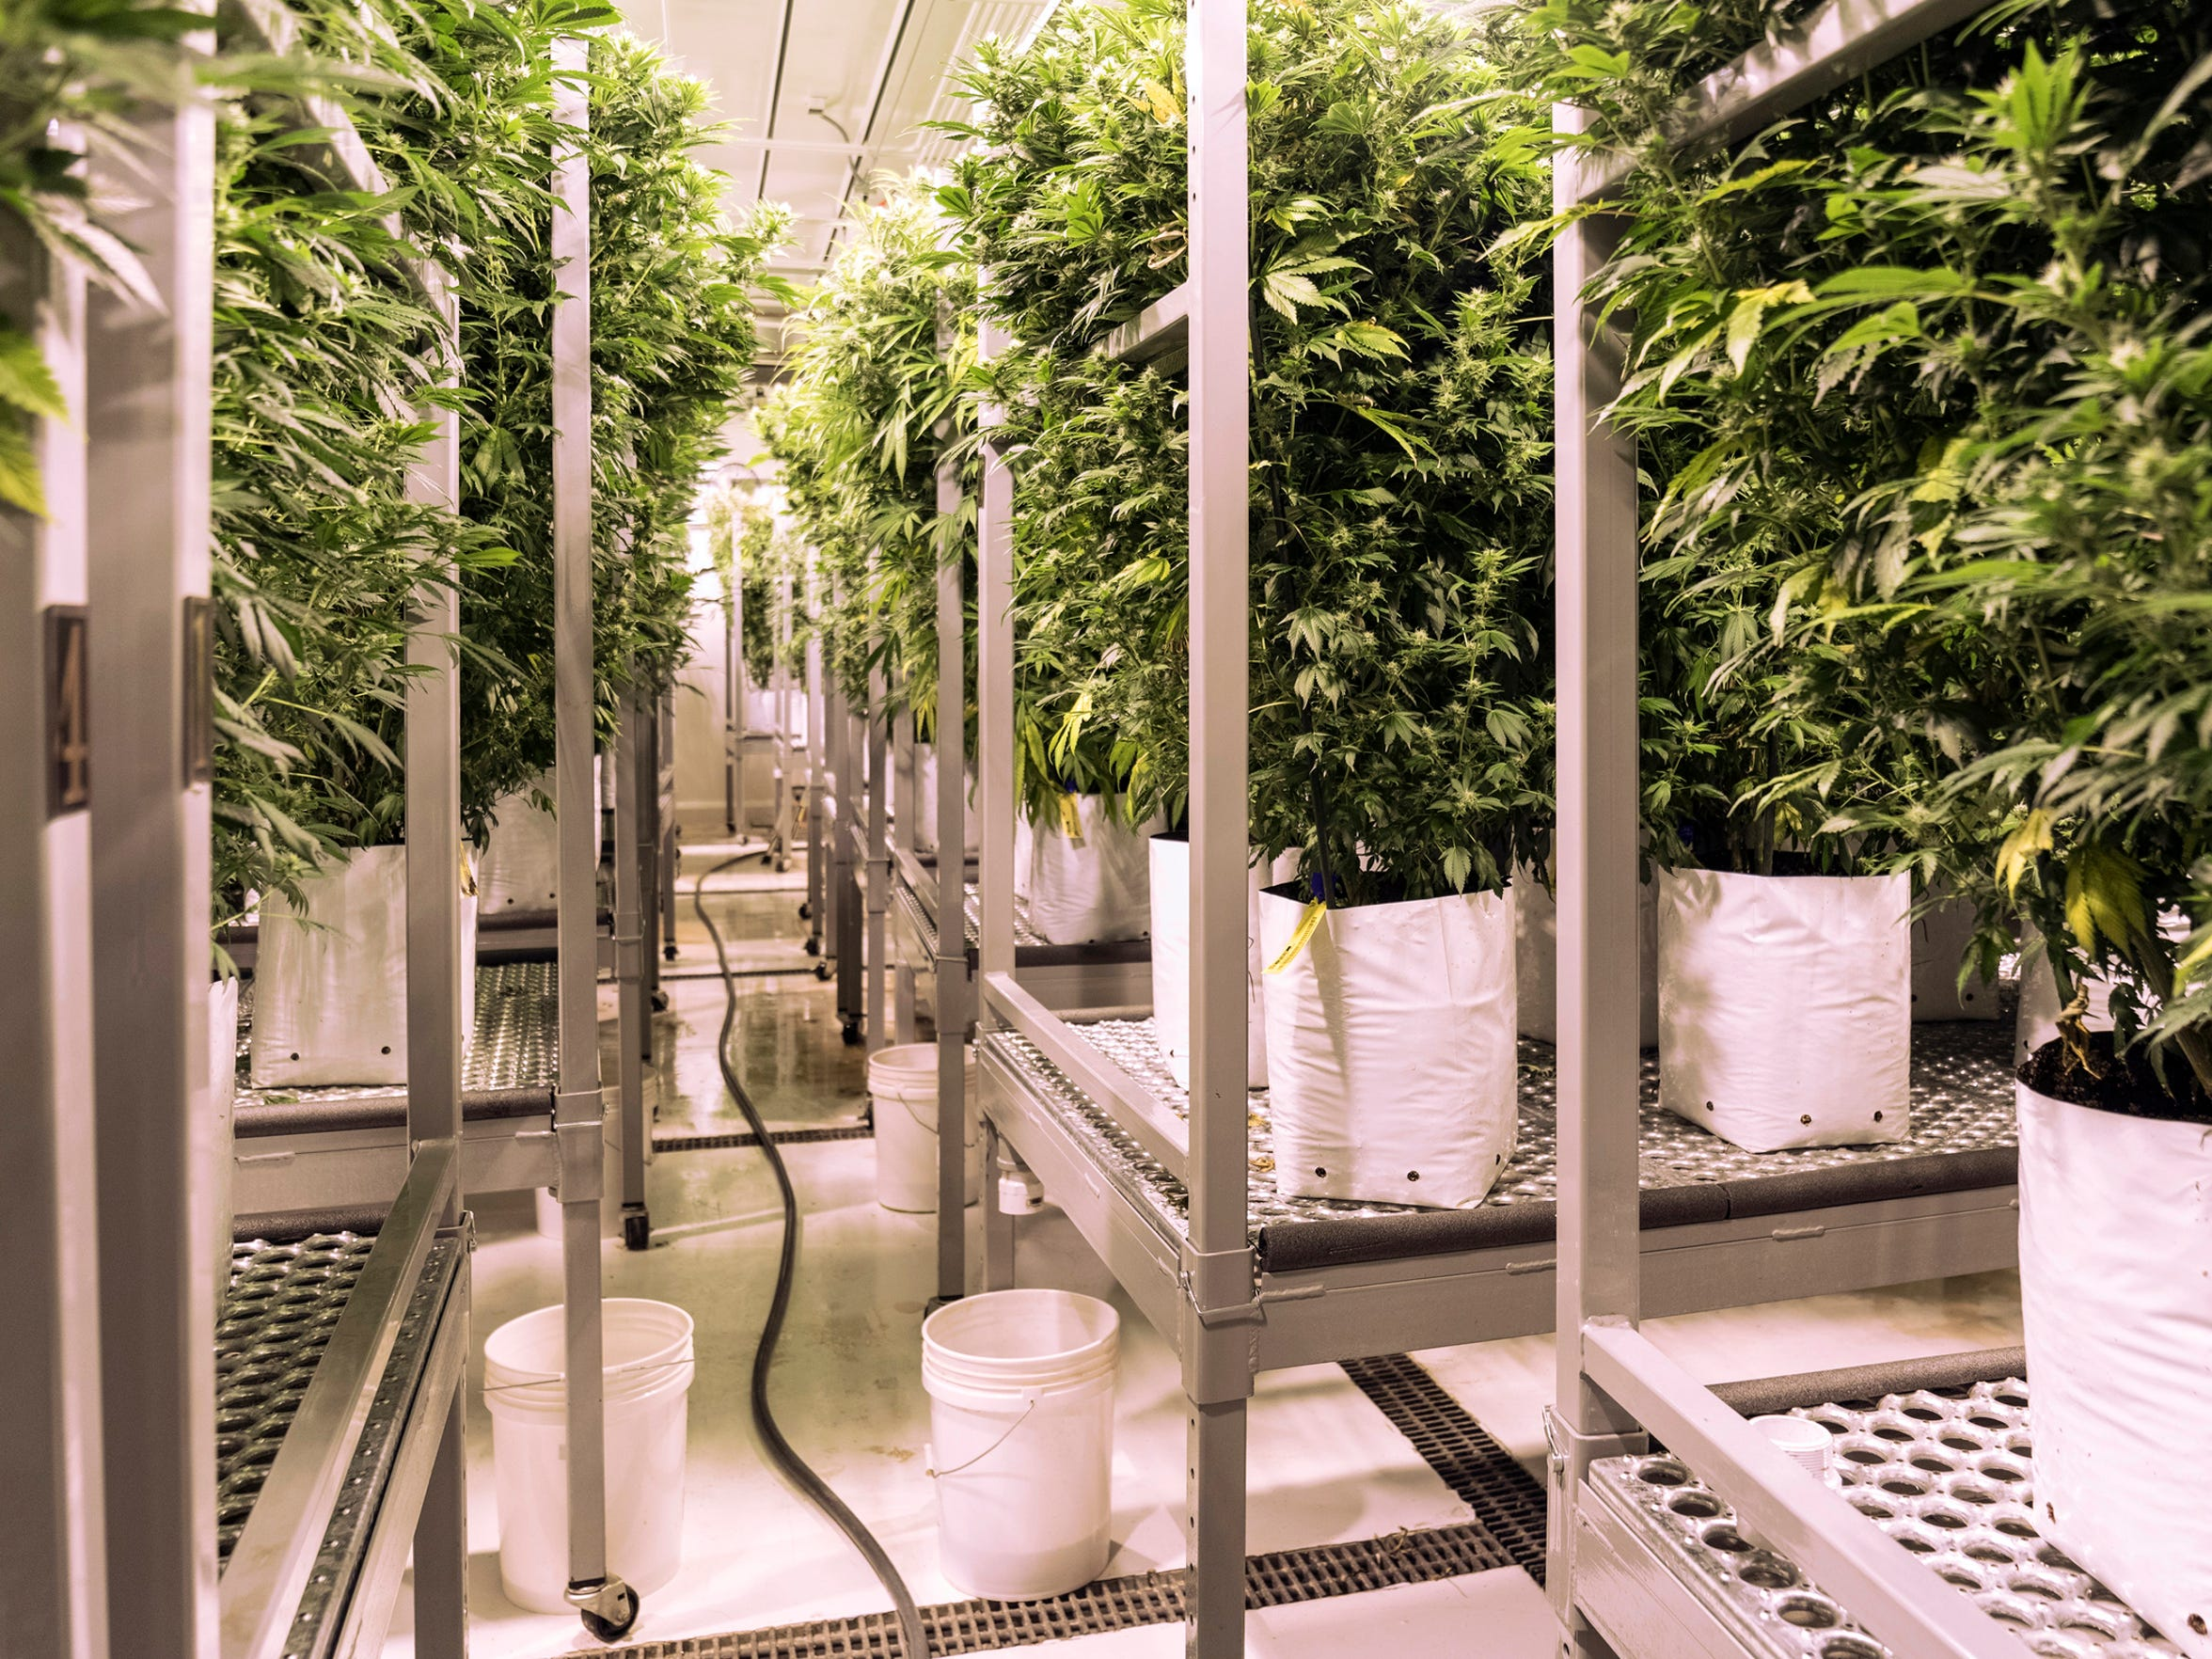 Cannabis plants are grown for research at the MedPharm in Denver, Colo., Wednesday, June 20, 2018.